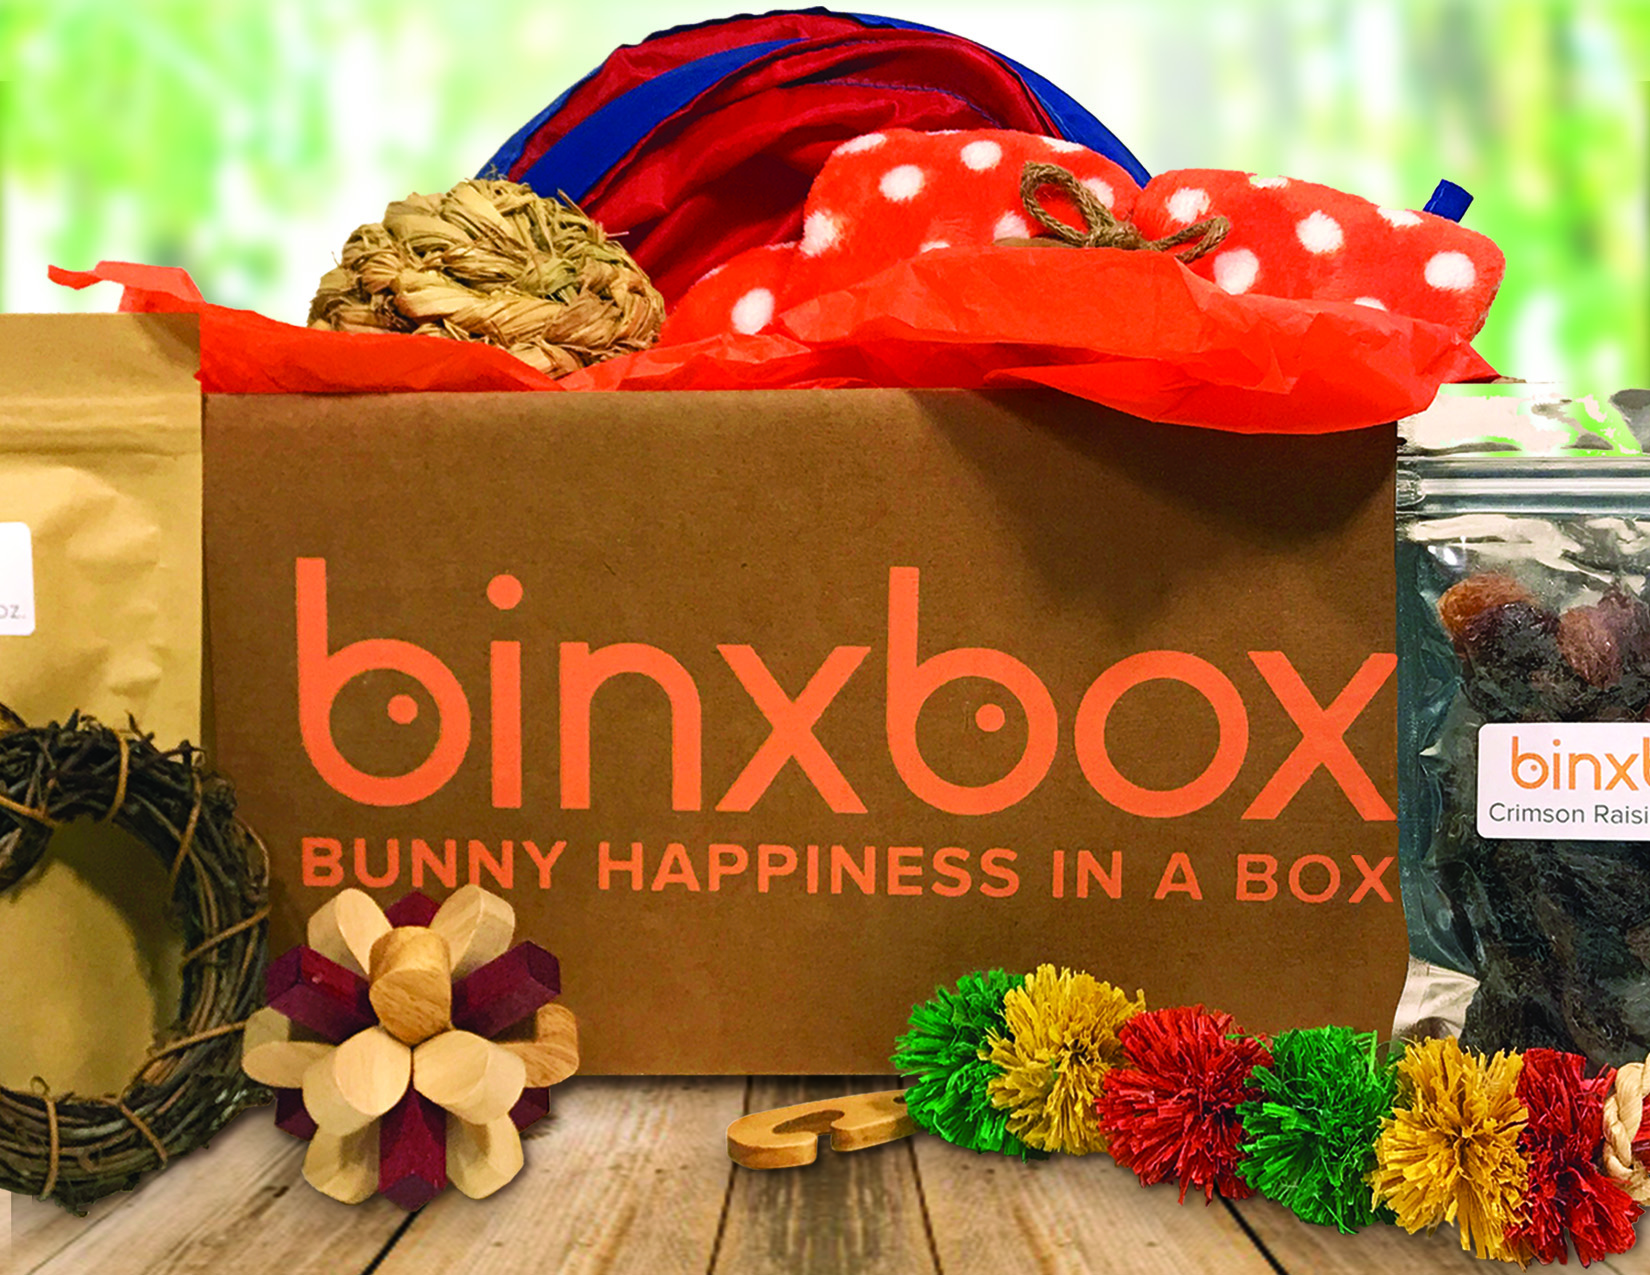 BinxBox - A U.S. based subscription box for house rabbits. (also guinea pigs & more!)Our goal is to help house rabbits stay happy & healthy by bringing treats, toys, & supplies that are well-researched, quality-tested, & worry-free.